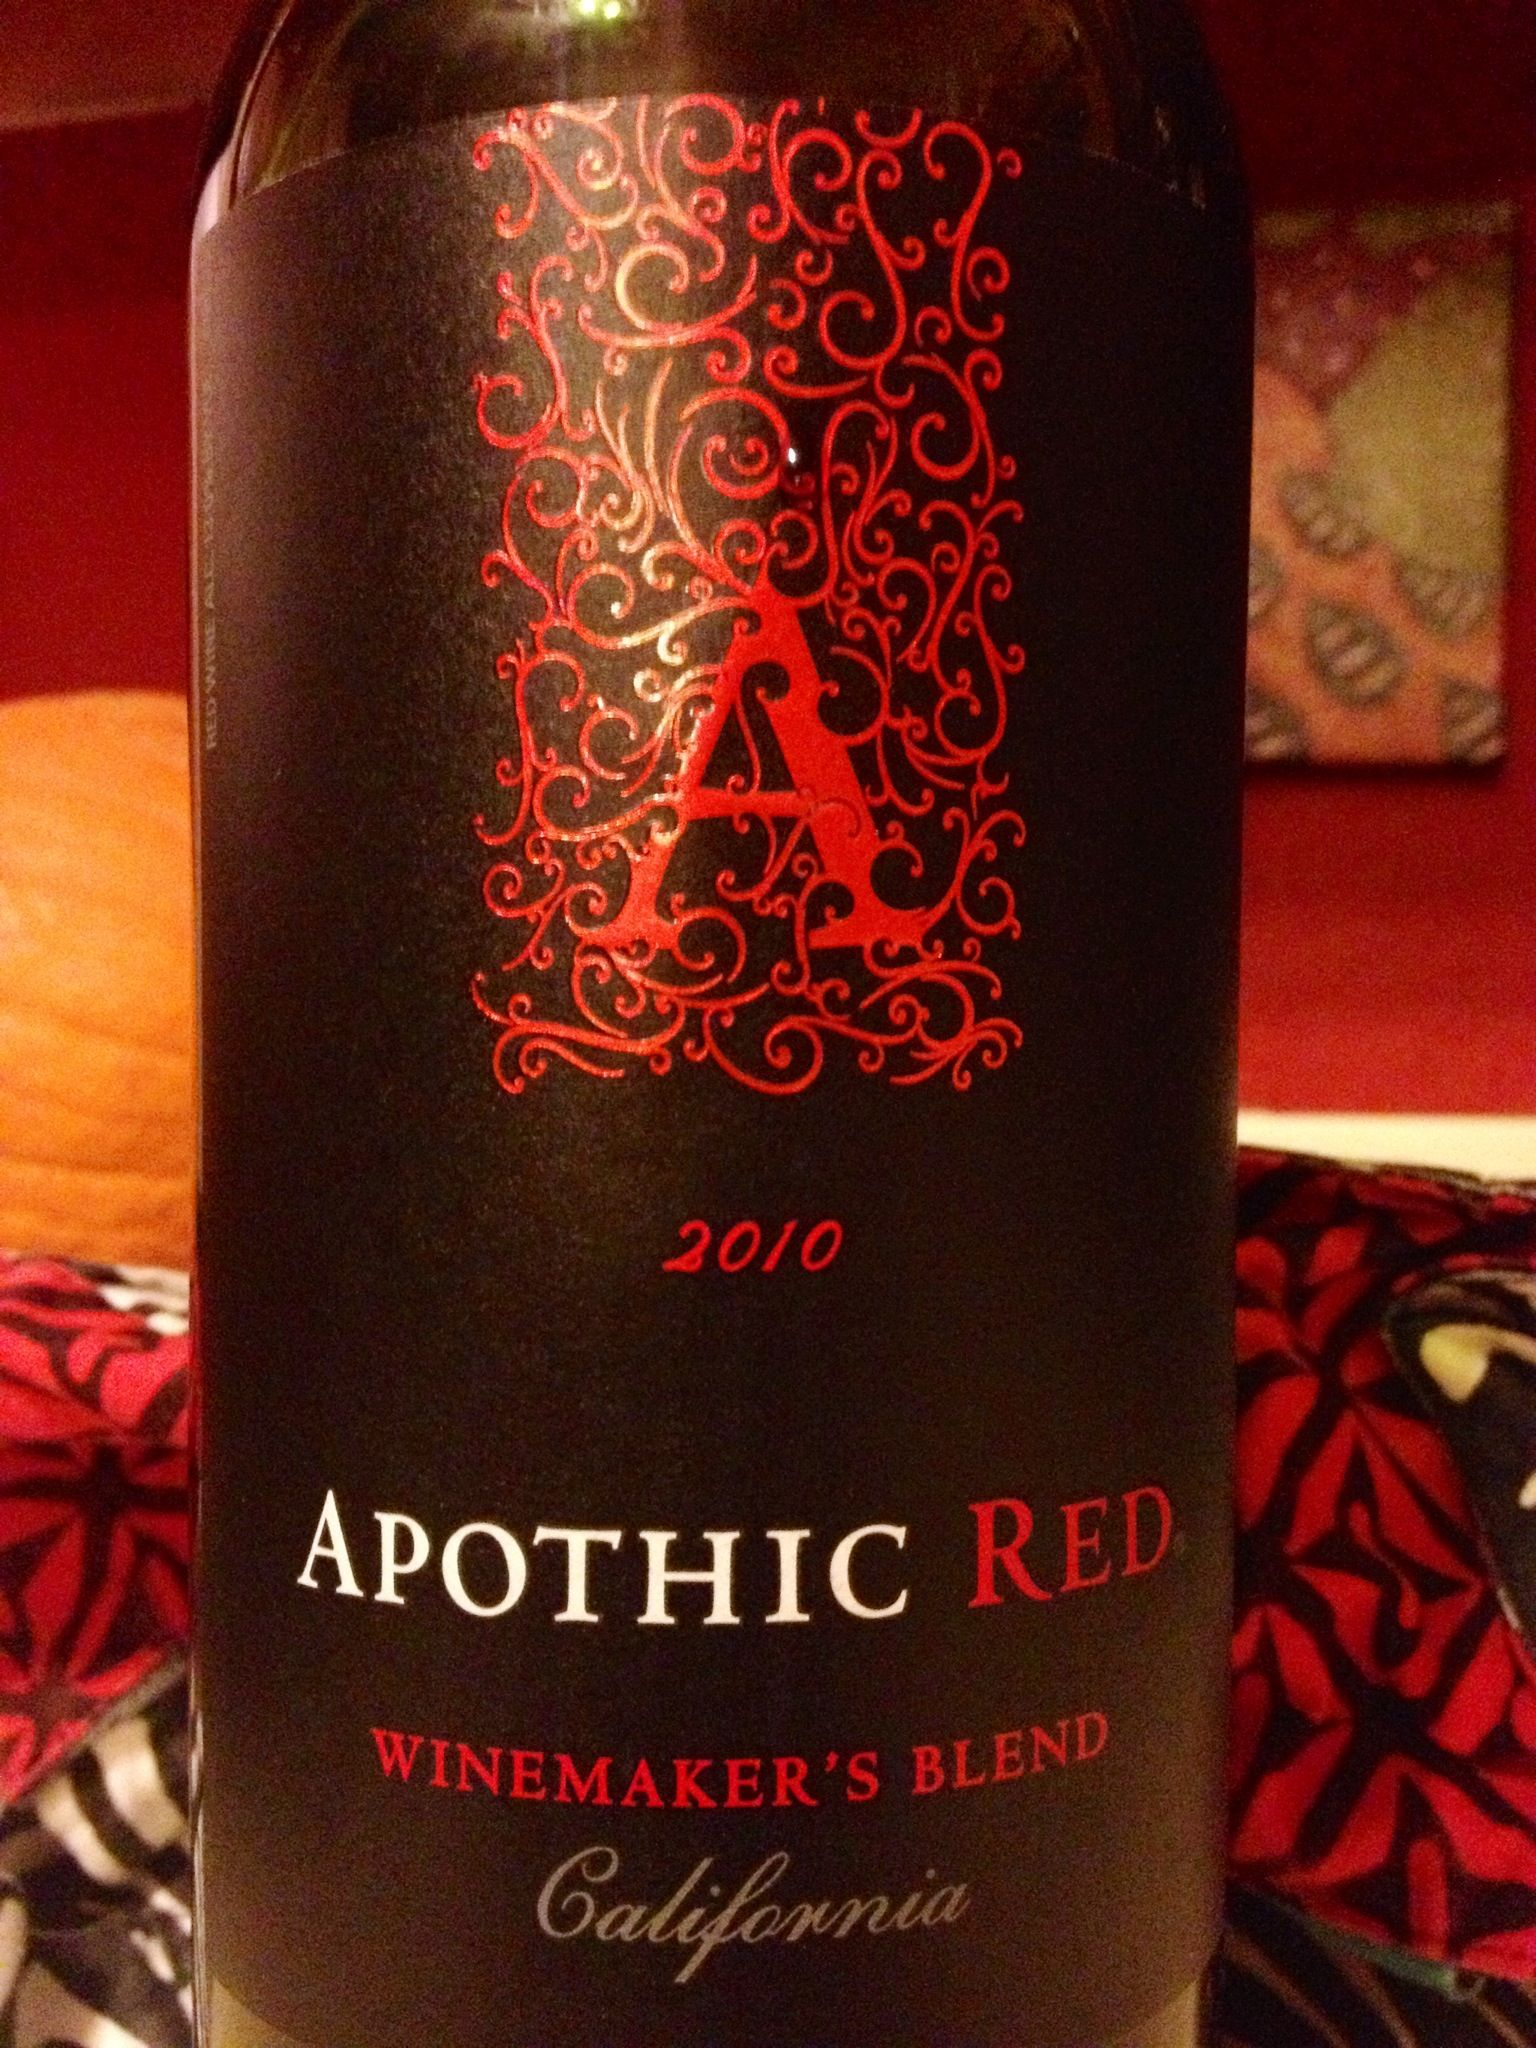 Apothic Red A Wonderful Inexpensive Red Blend Of Zinfandel Syrah Cabernet Sauvignon And Merlot This Is One If Our Go To Wines Favorite Wine Wines Syrah